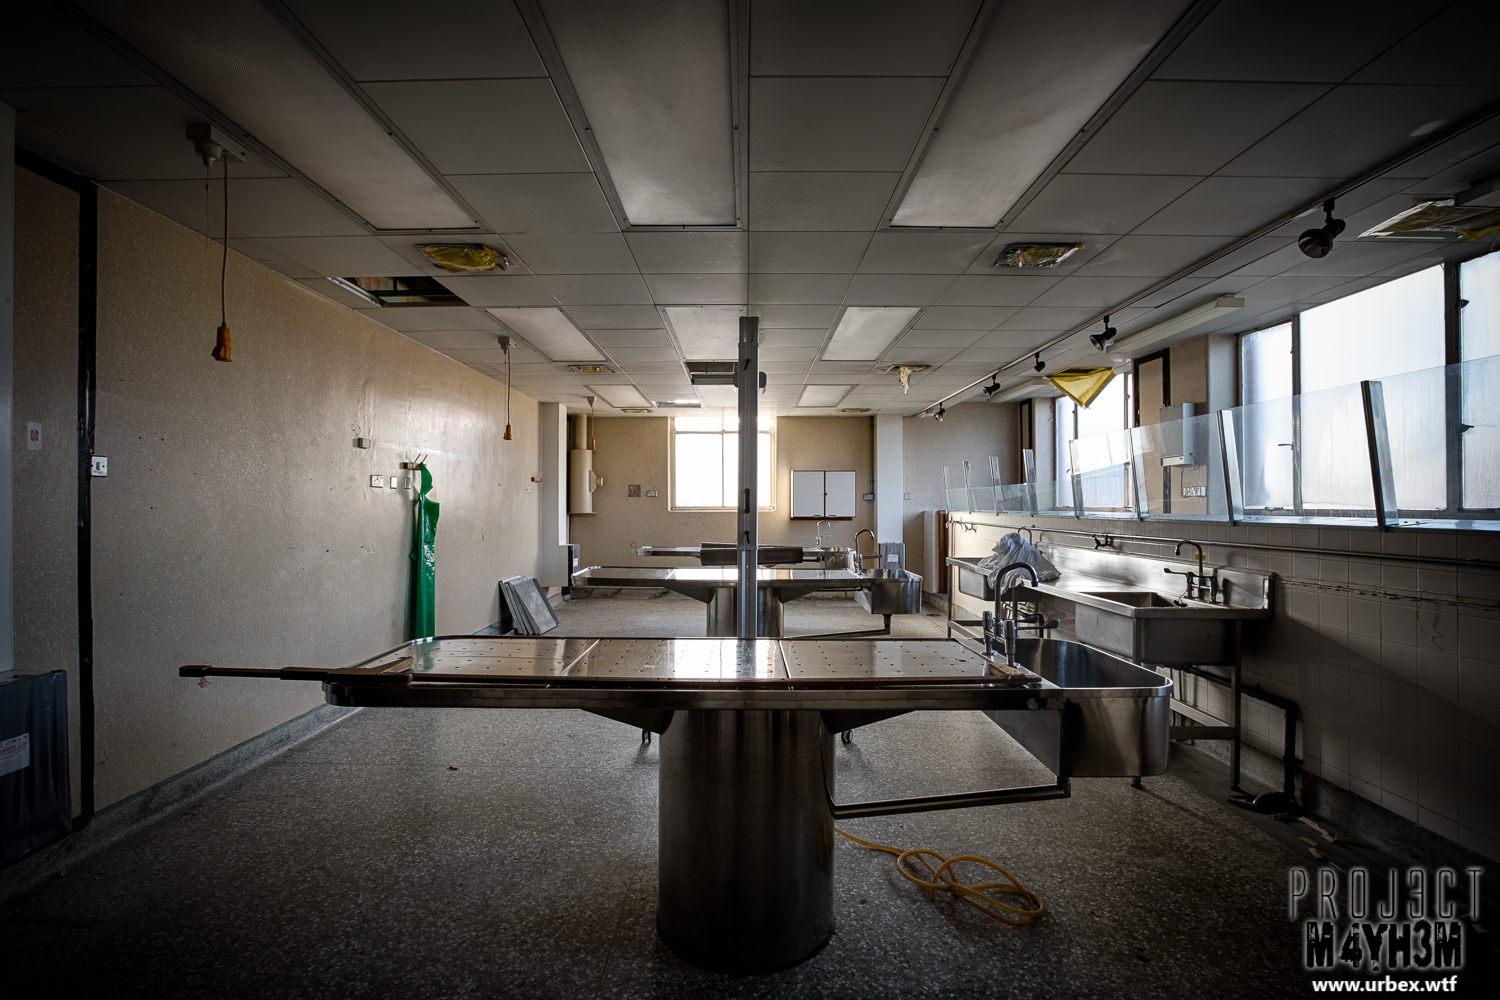 Selly Oak Hospital Morgue